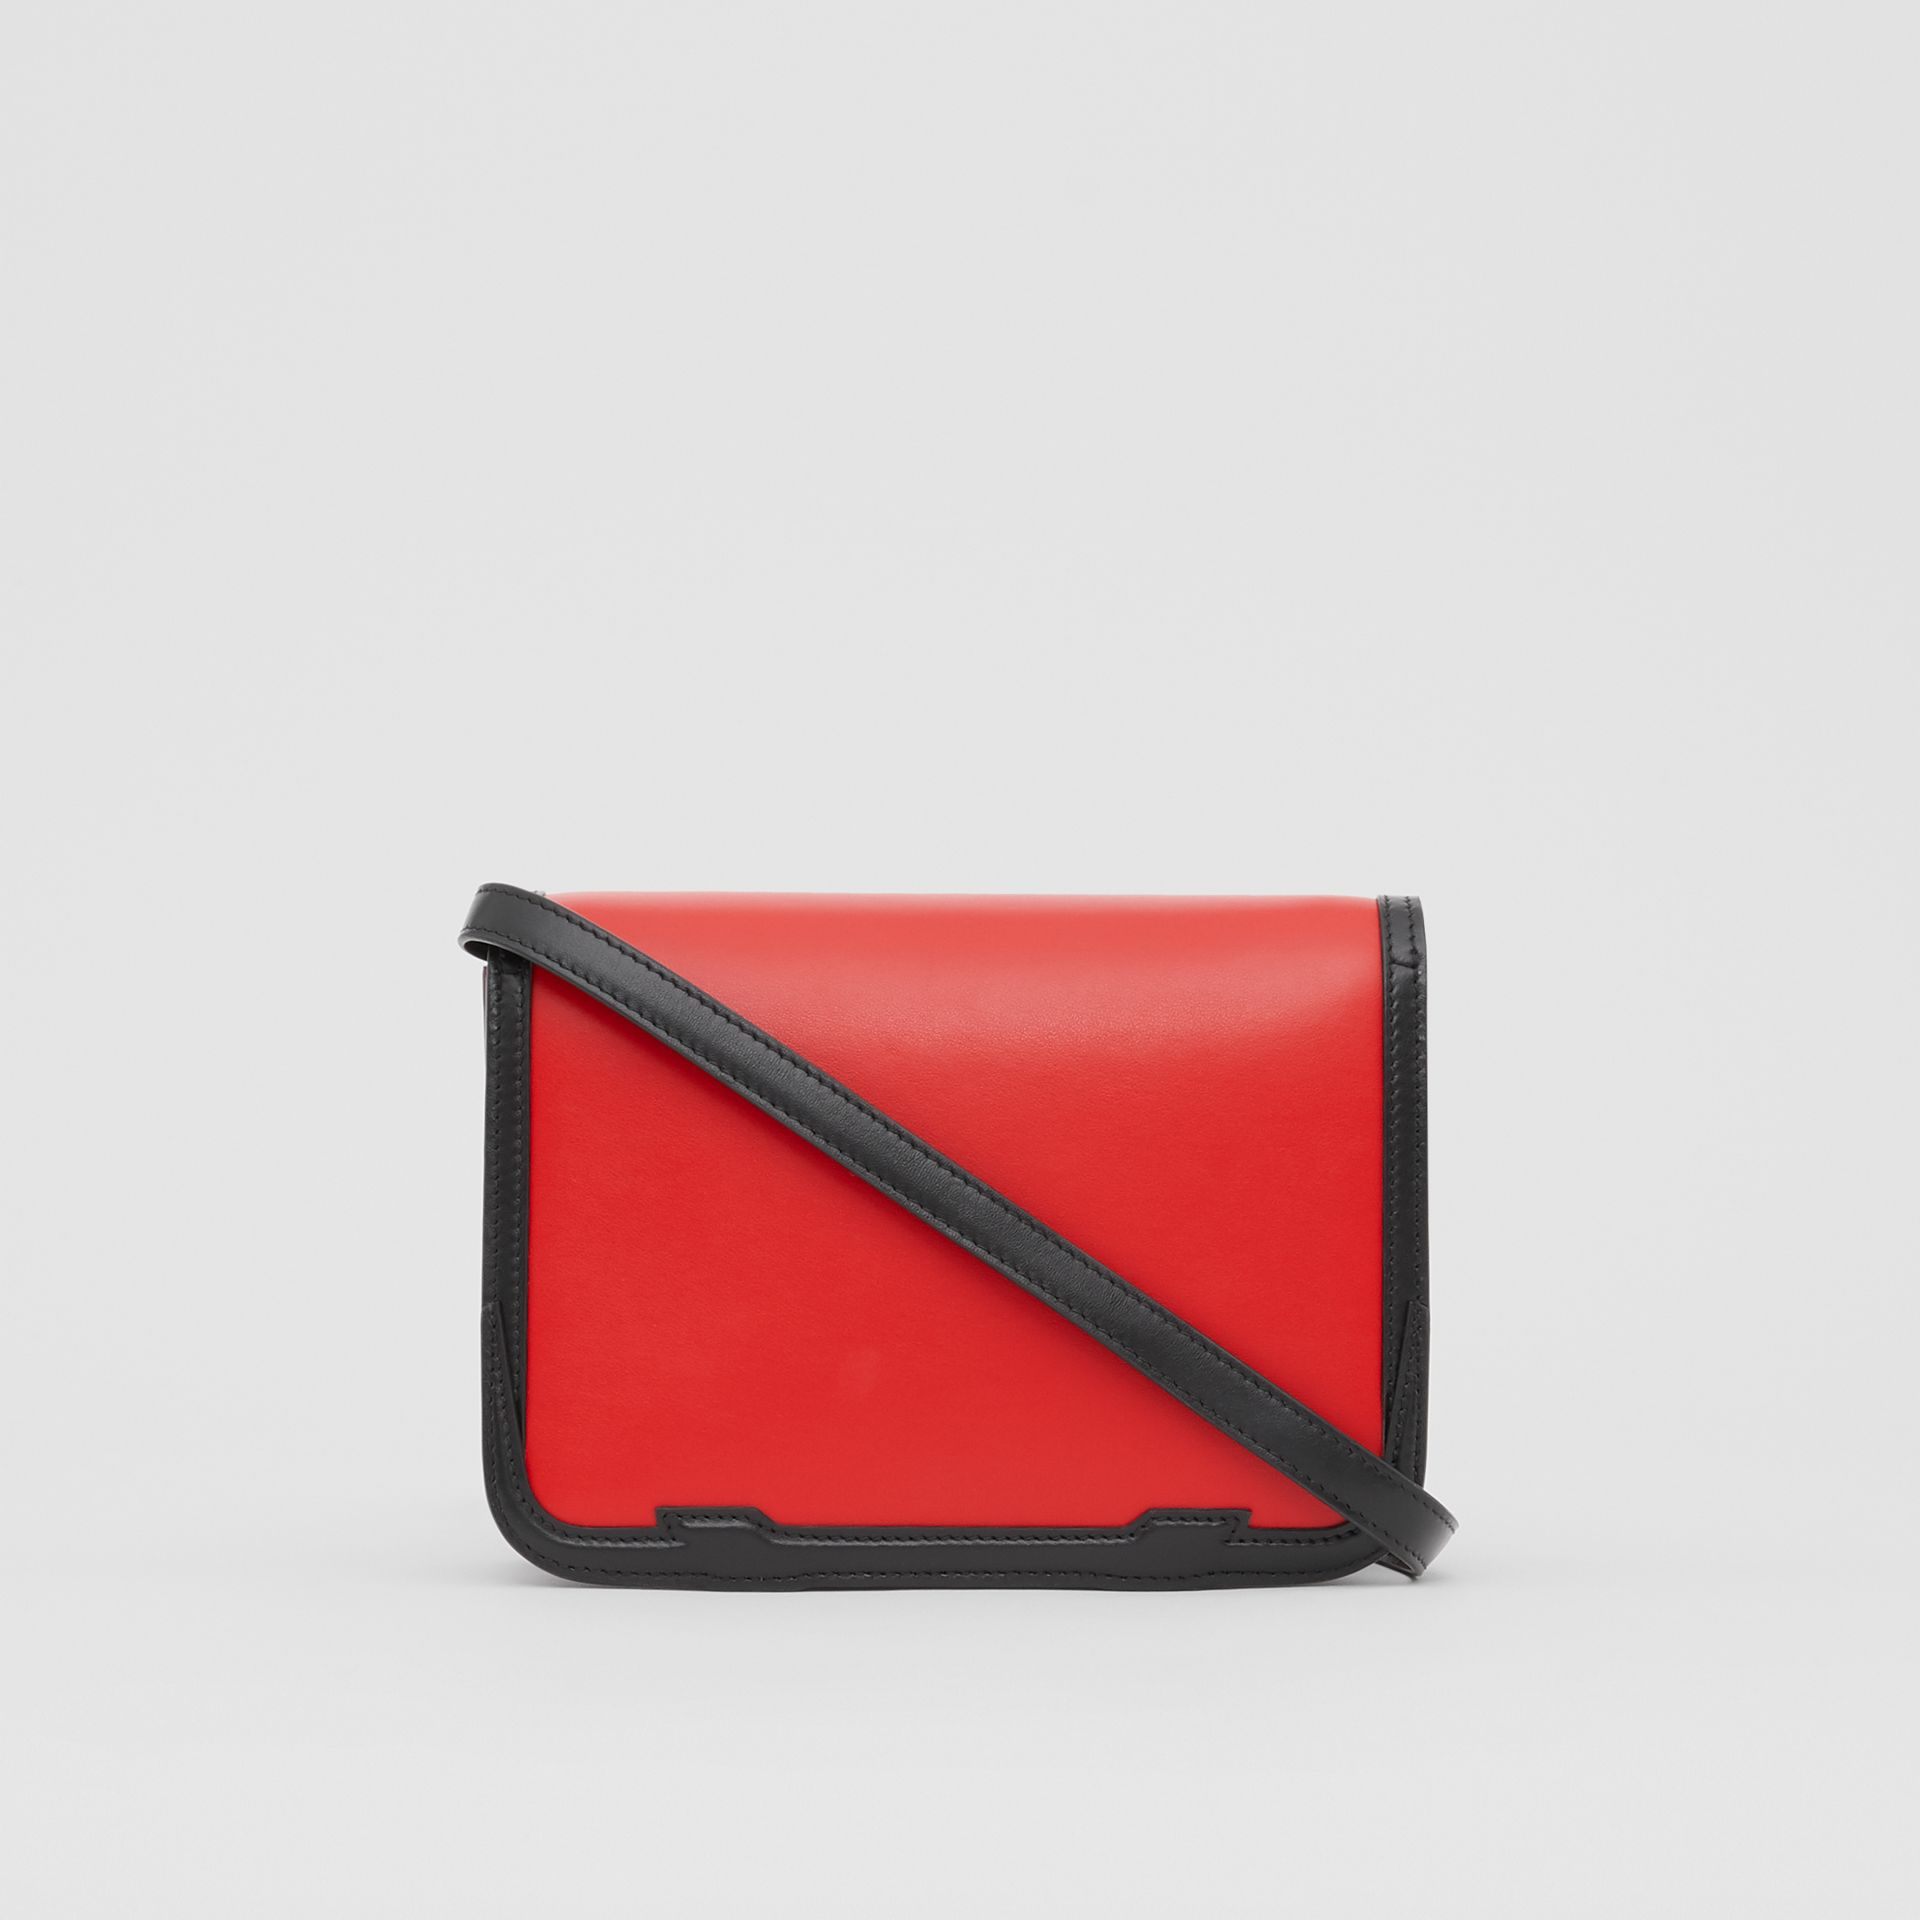 Small Appliqué Leather TB Bag in Bright Red - Women | Burberry United States - gallery image 7